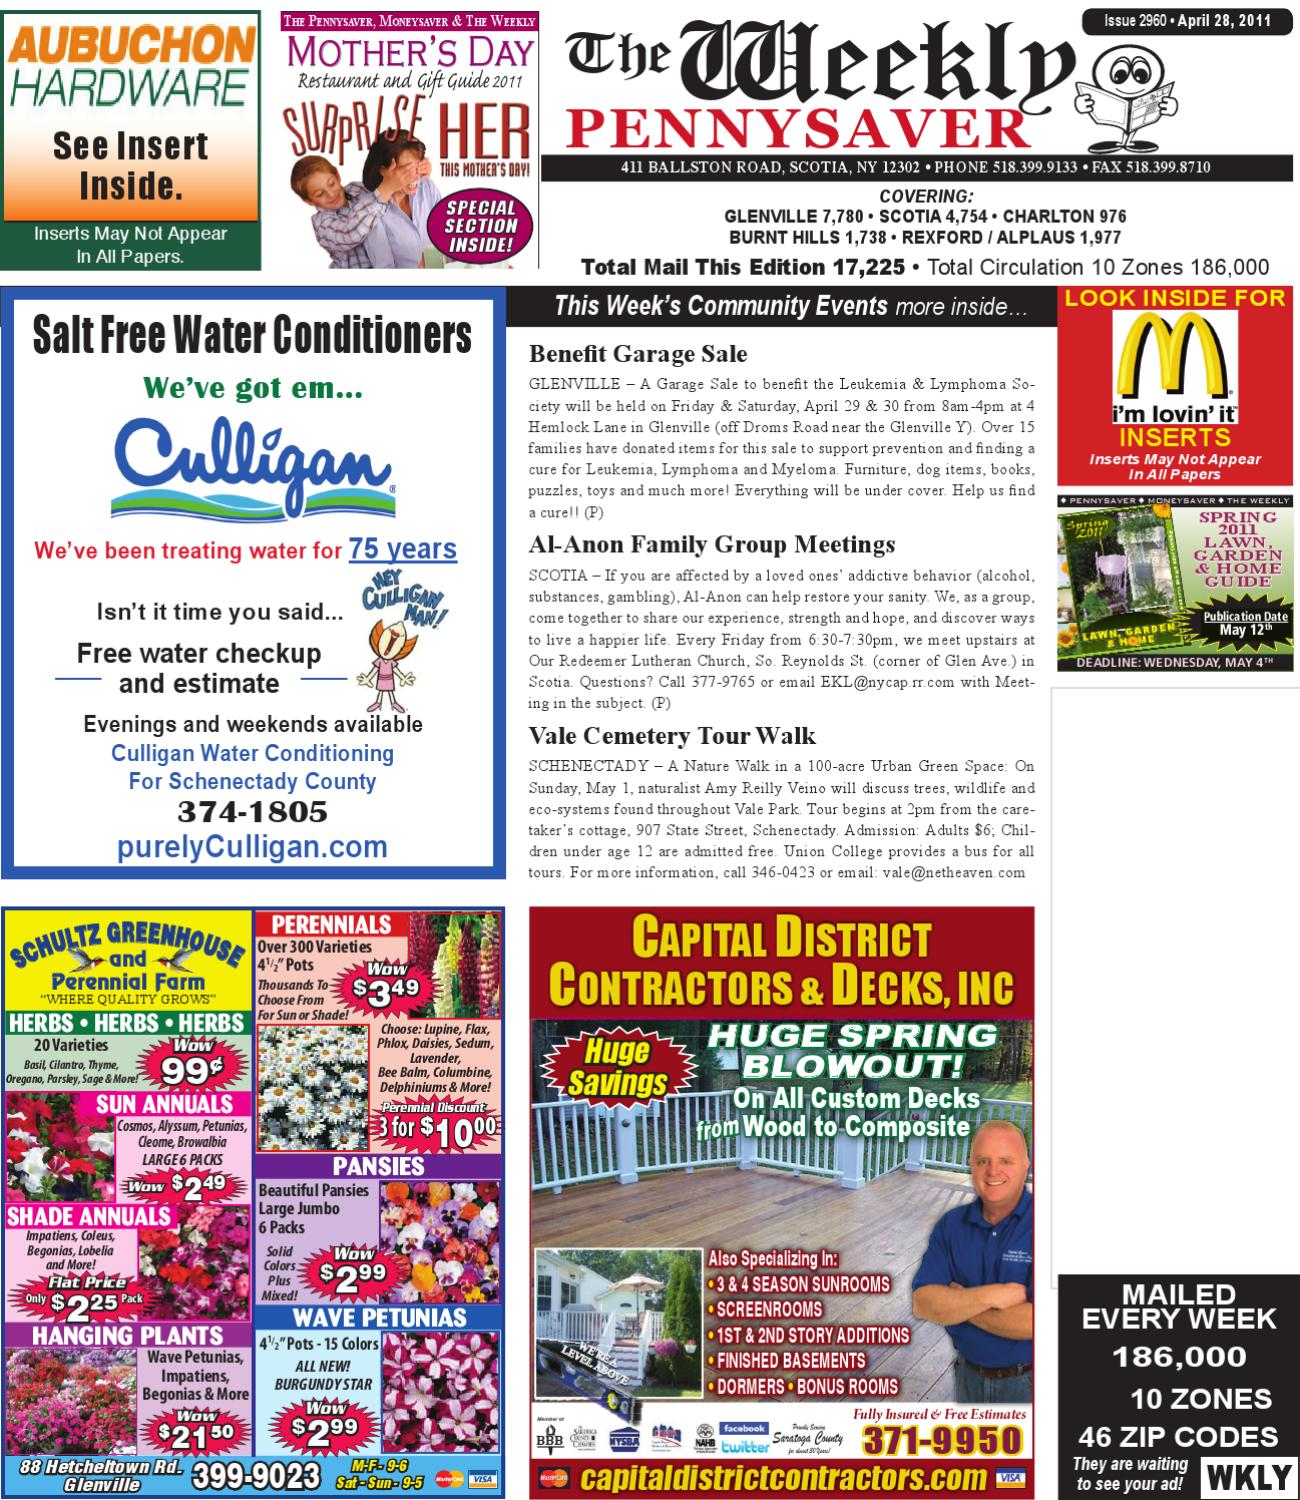 5611 sheldon road - The Weekly Pennysaver 042811 By Capital Region Weekly Newspapers Issuu